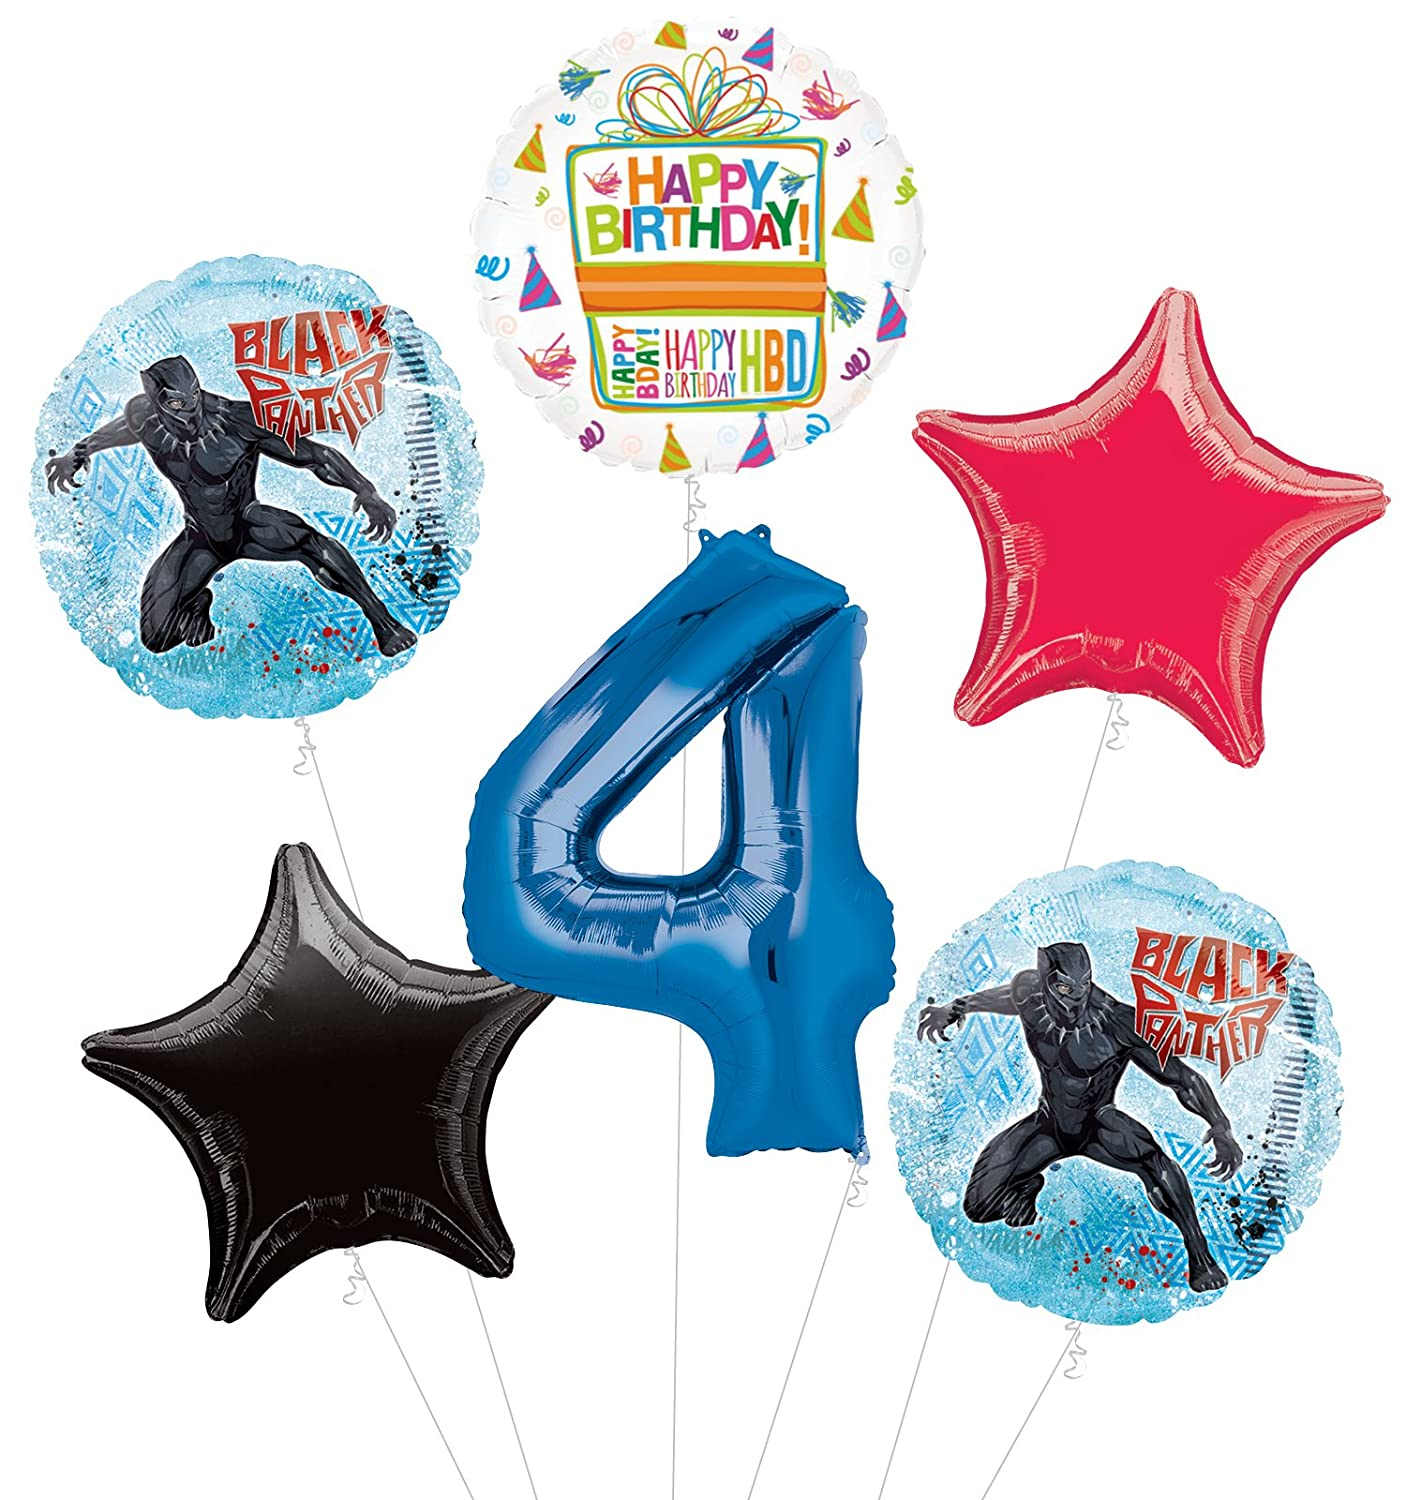 Black Panther 4th Birthday Party Supplies Balloon Bouquet Decorations by Mayflower